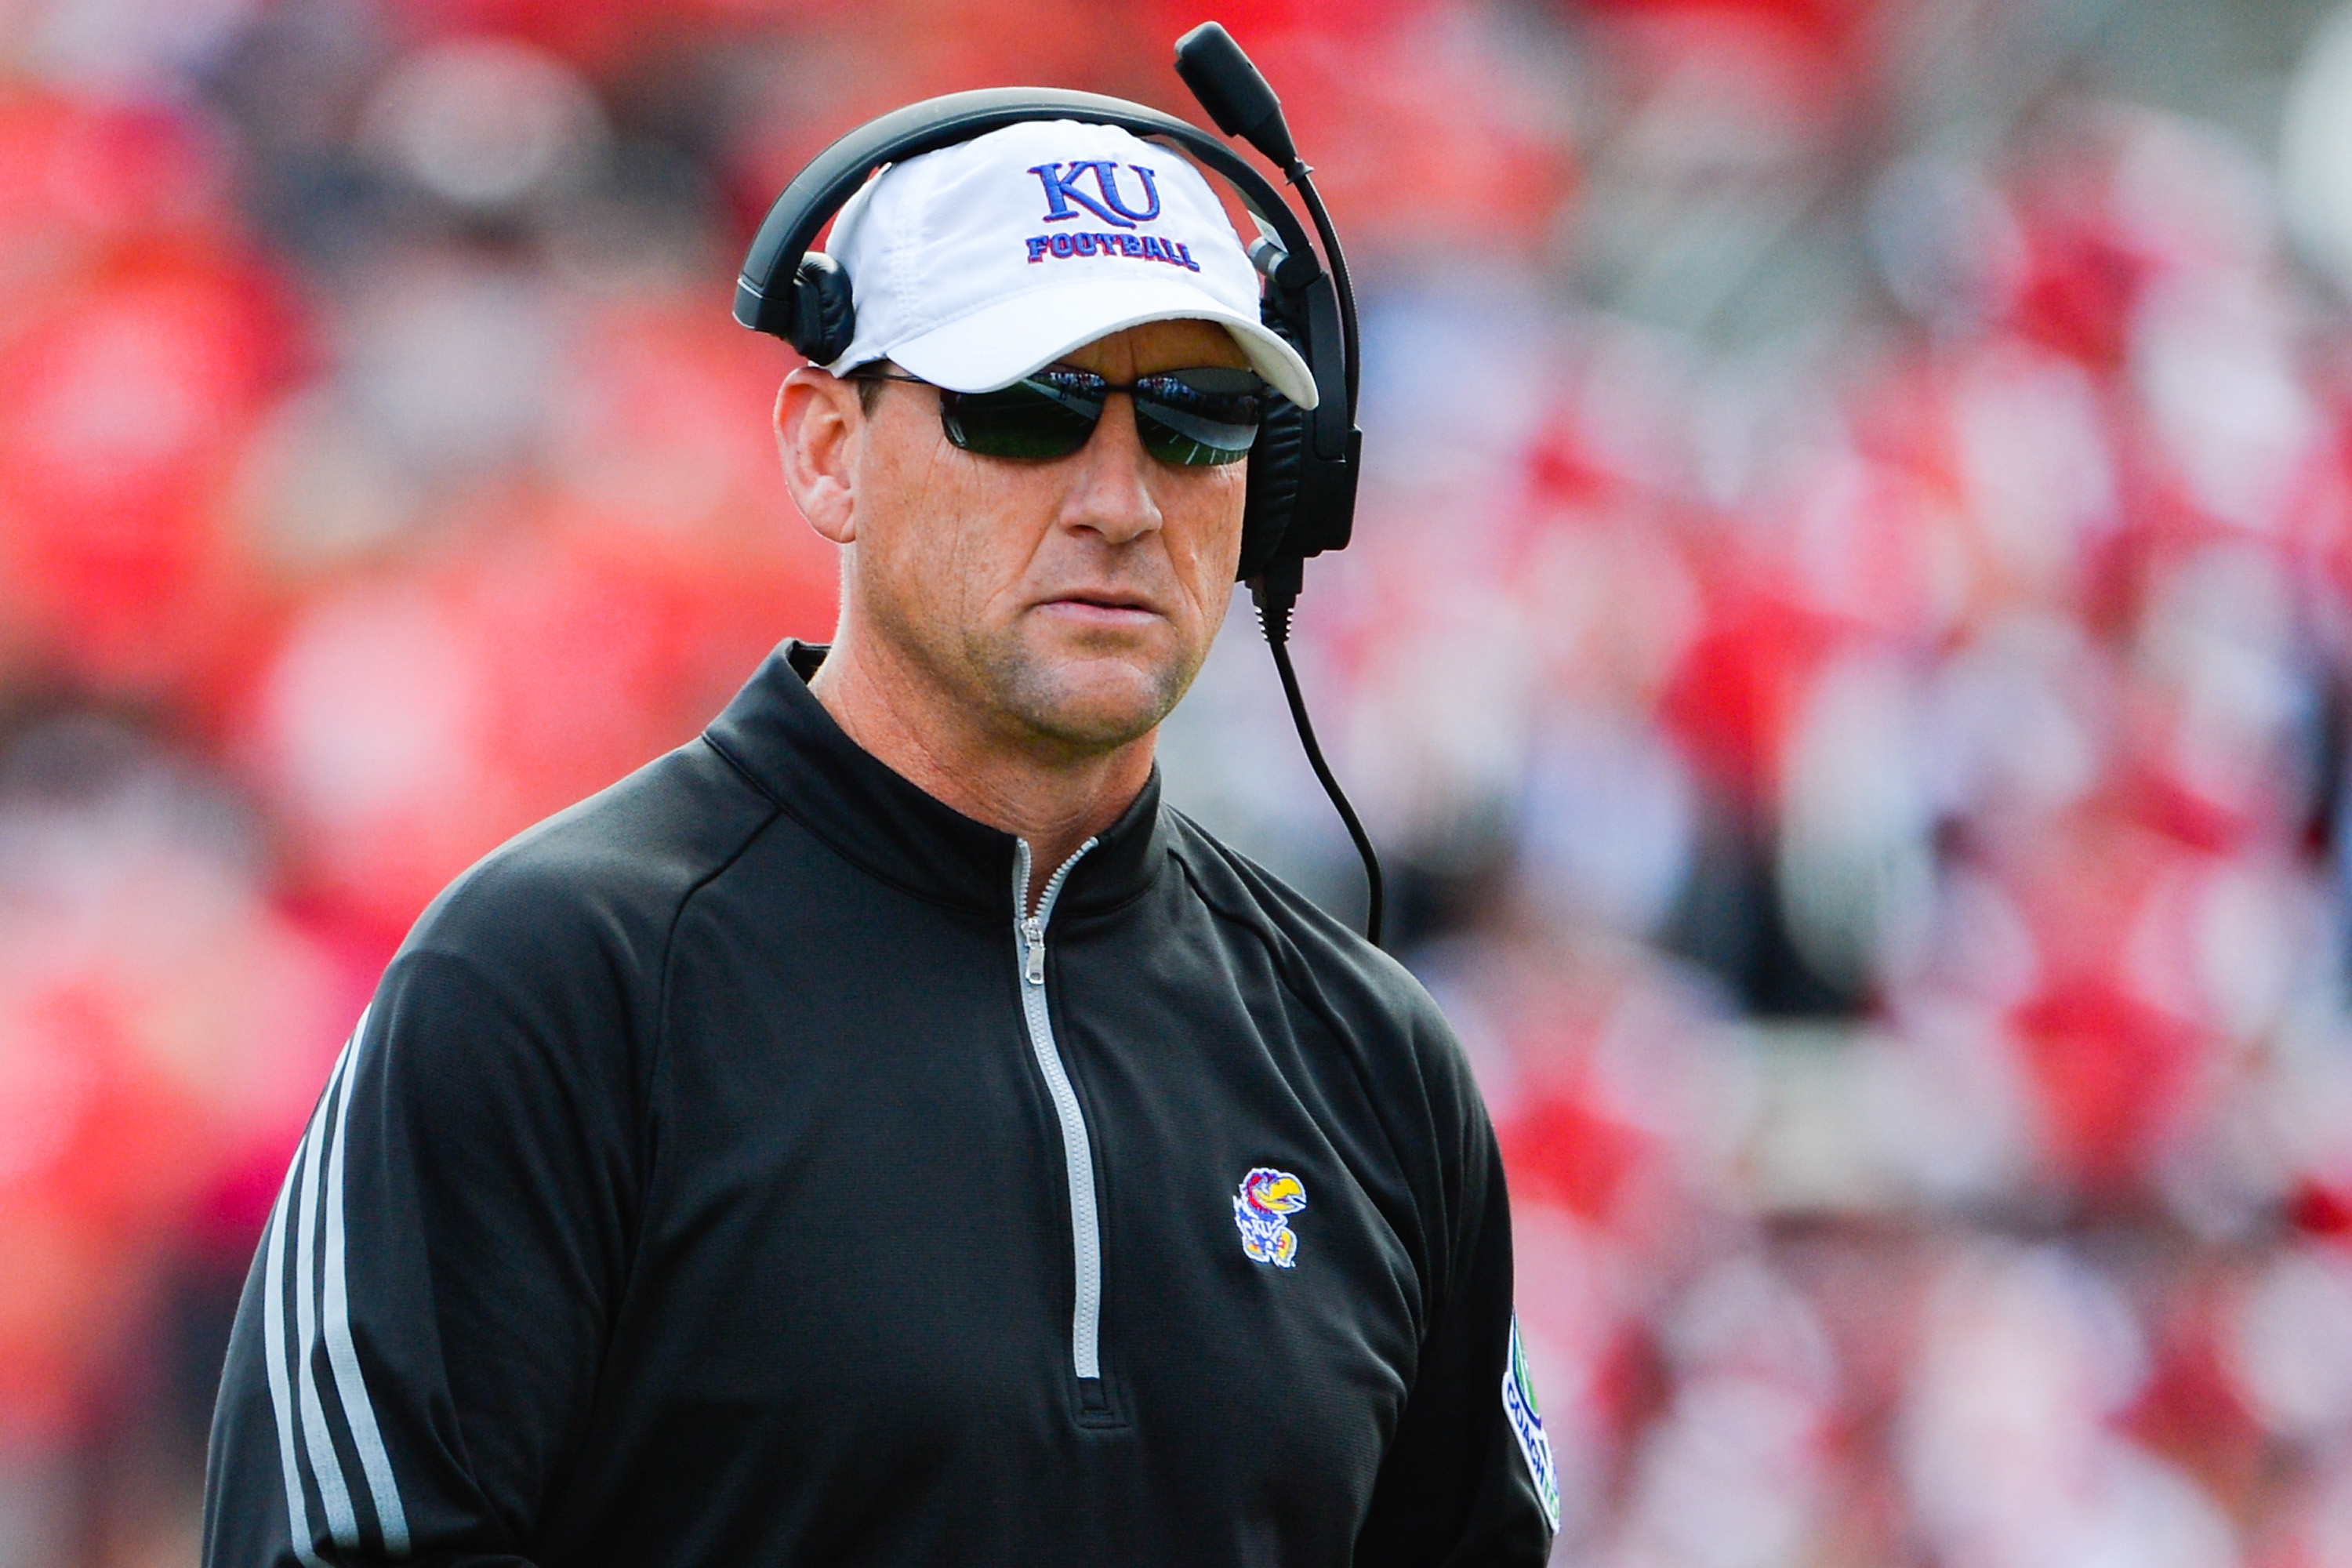 Kansas football: Just pay David Beaty what he's owed and move on